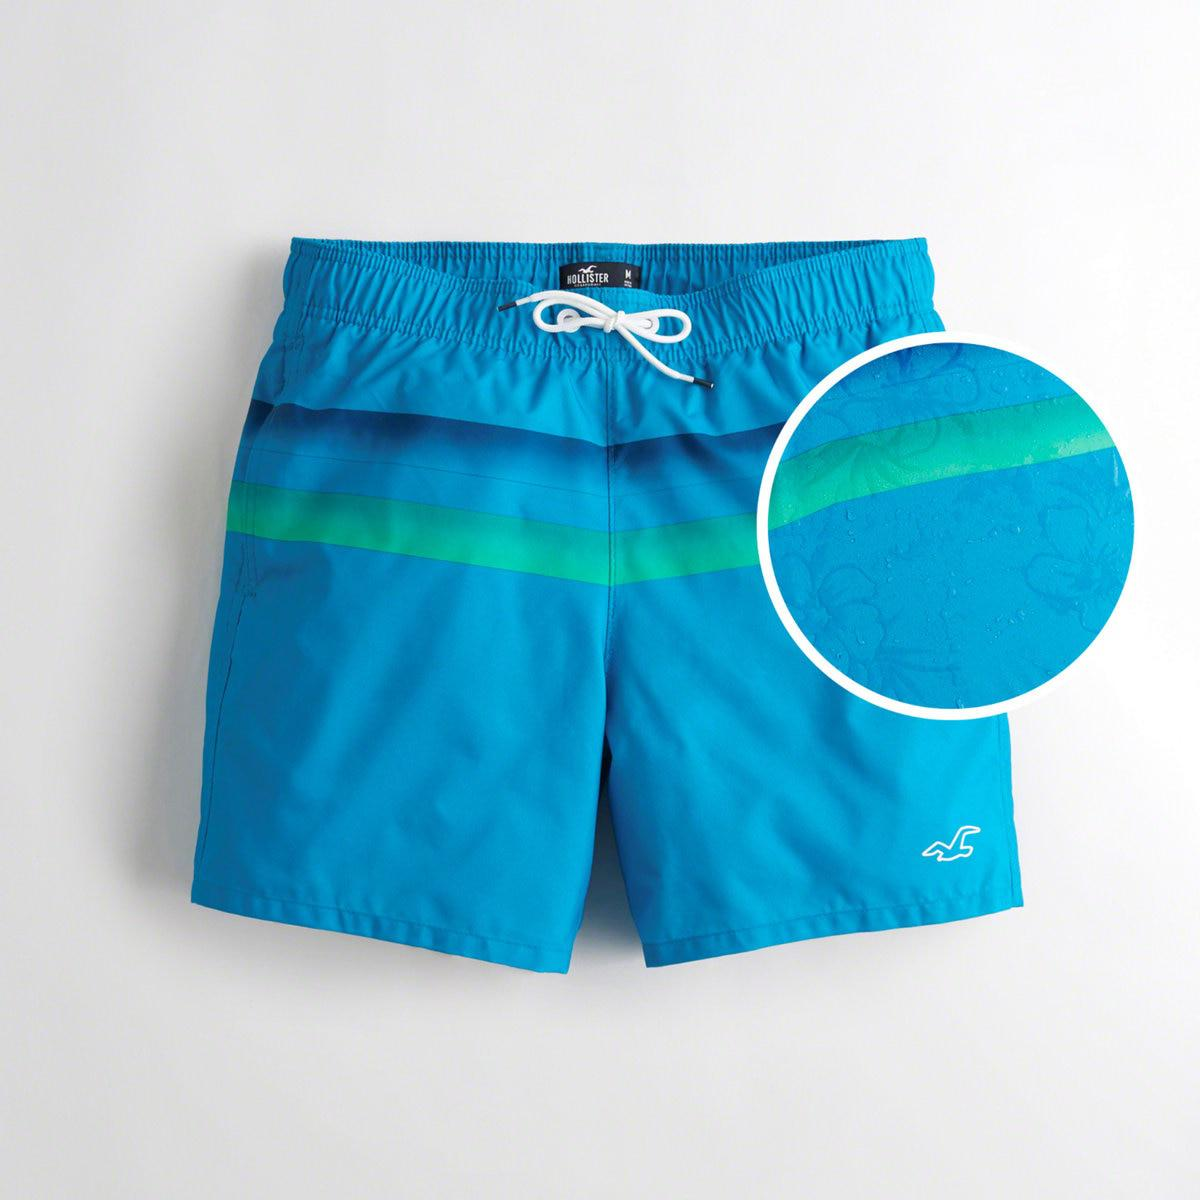 7b634dc0b1 Lyst - Hollister Guys Guard Fit Swim Trunks From Hollister in Blue ...